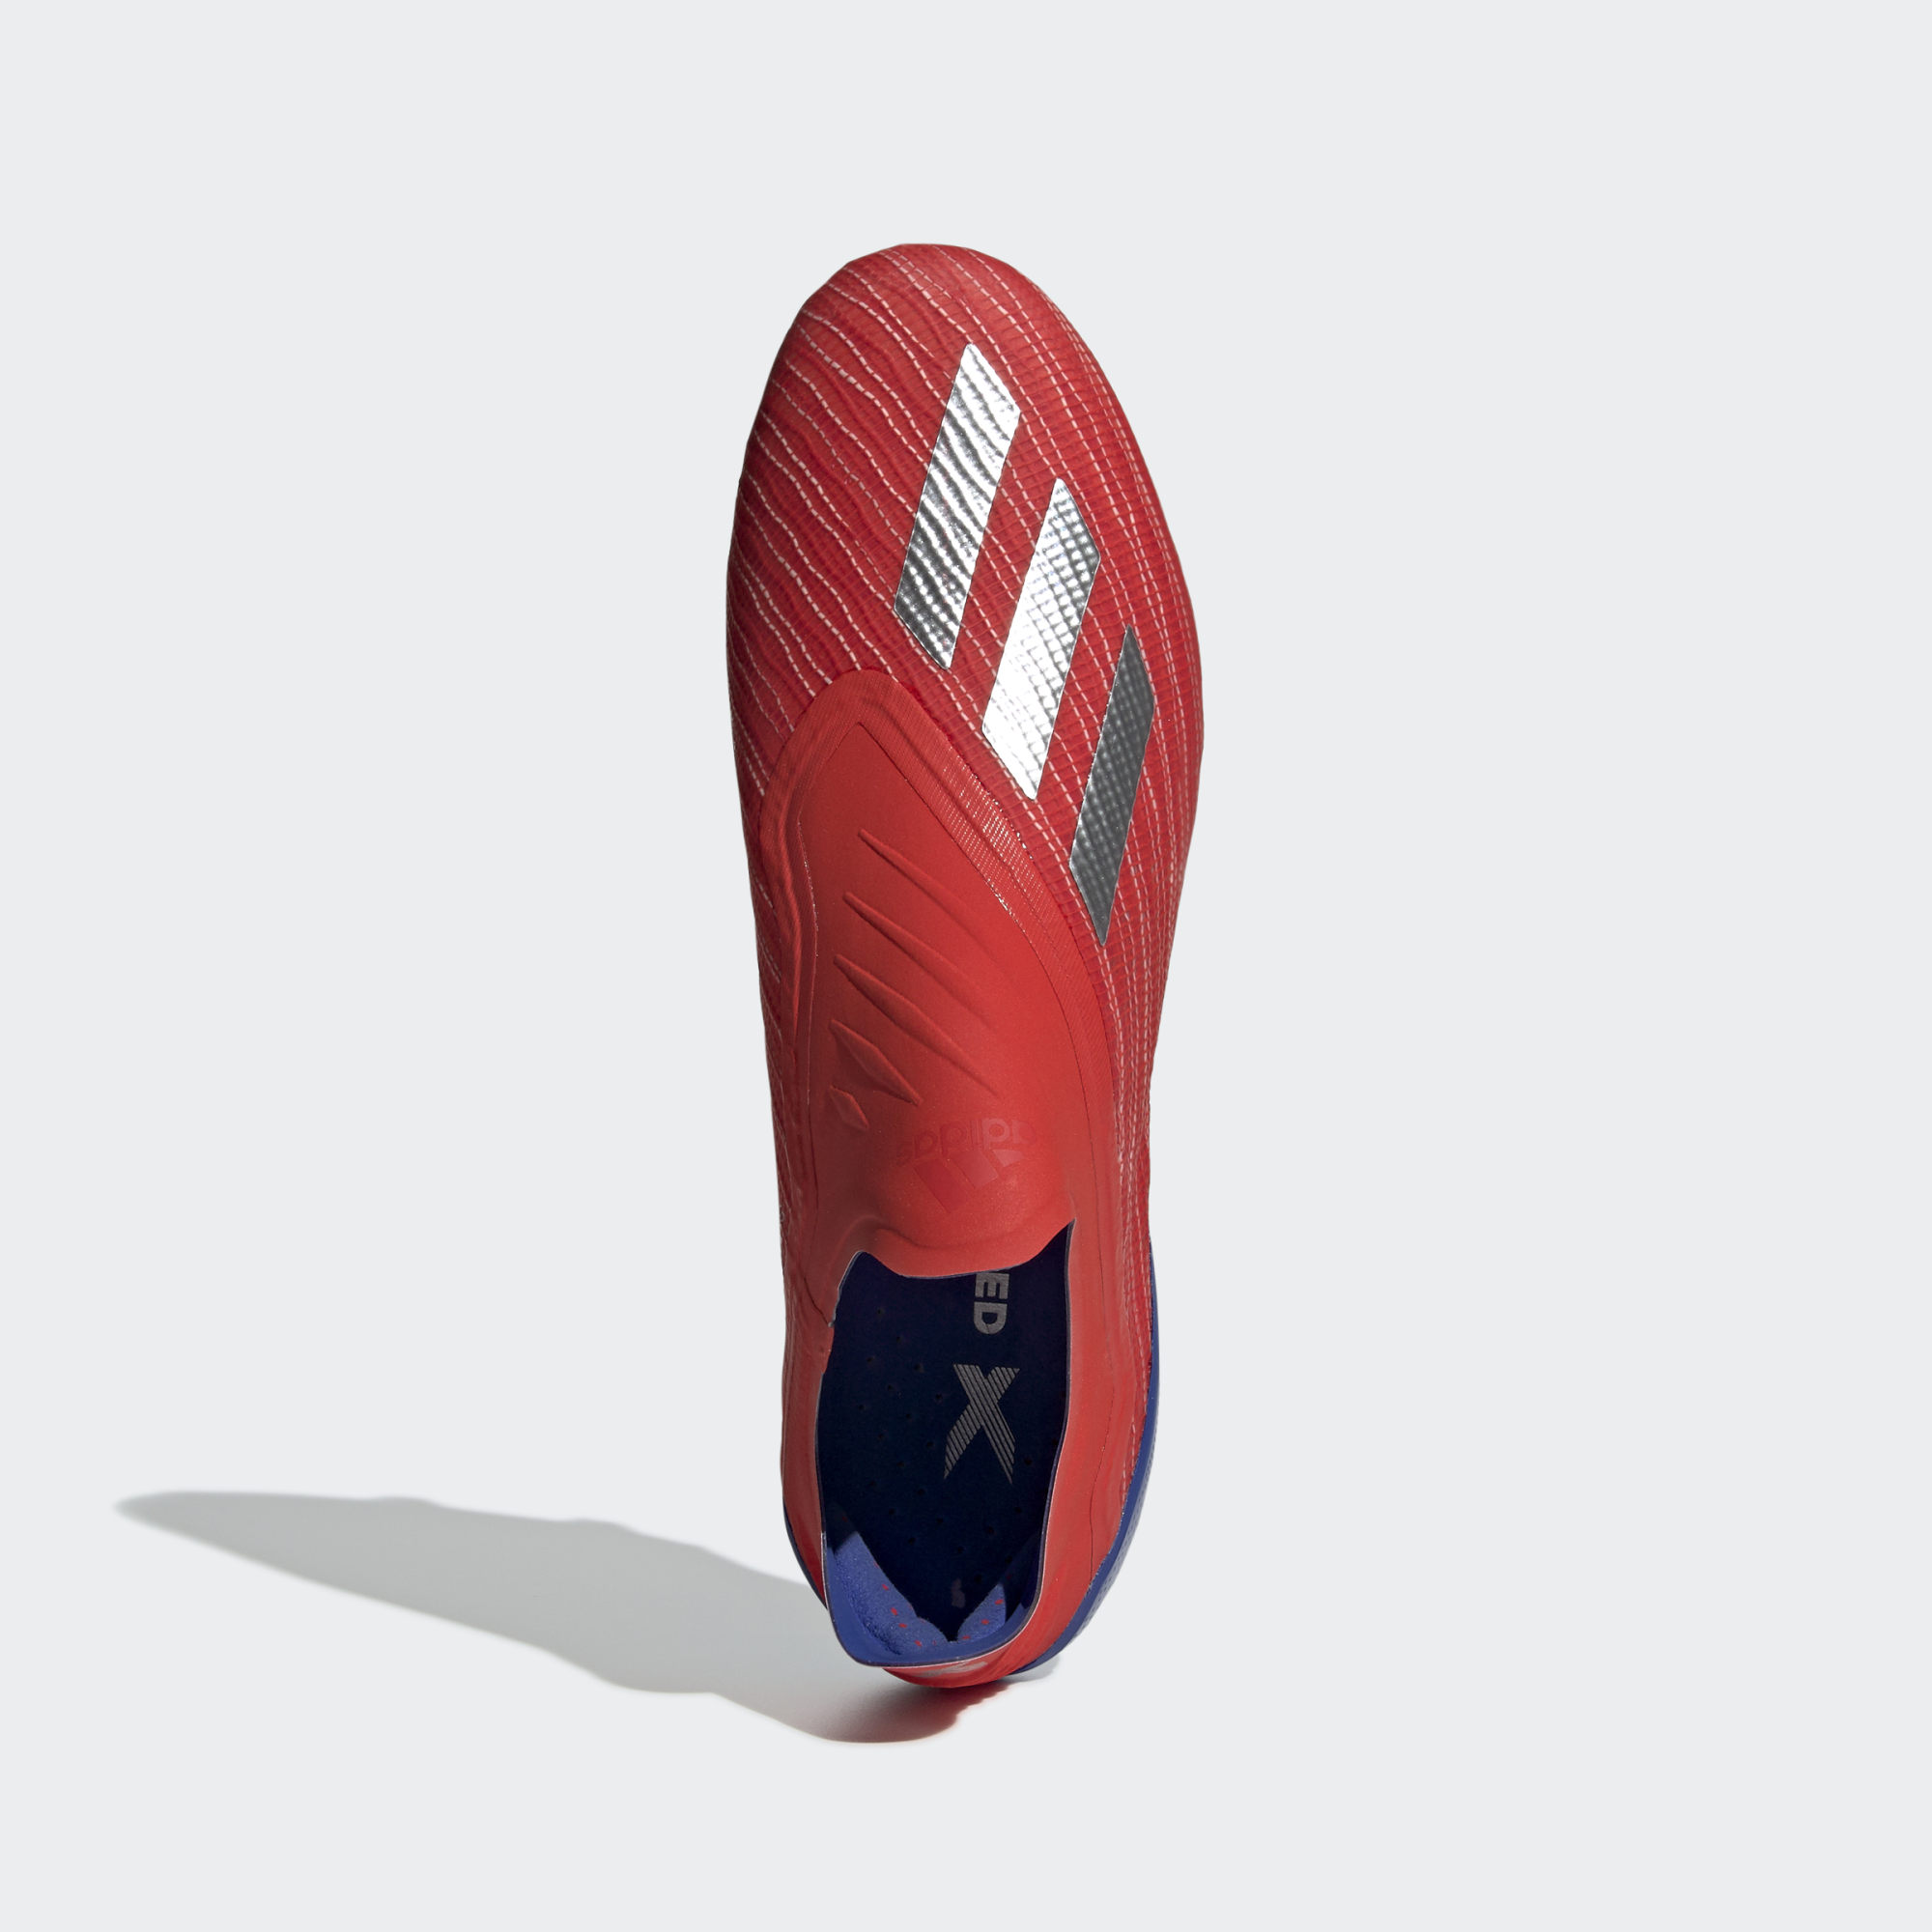 ede2e6874d8 ... adidas x 18 fg exhibit active red silver met bold blue 1a.jpg  Click to  enlarge image adidas x 18 fg exhibit active red silver met bold blue 2.jpg  ...